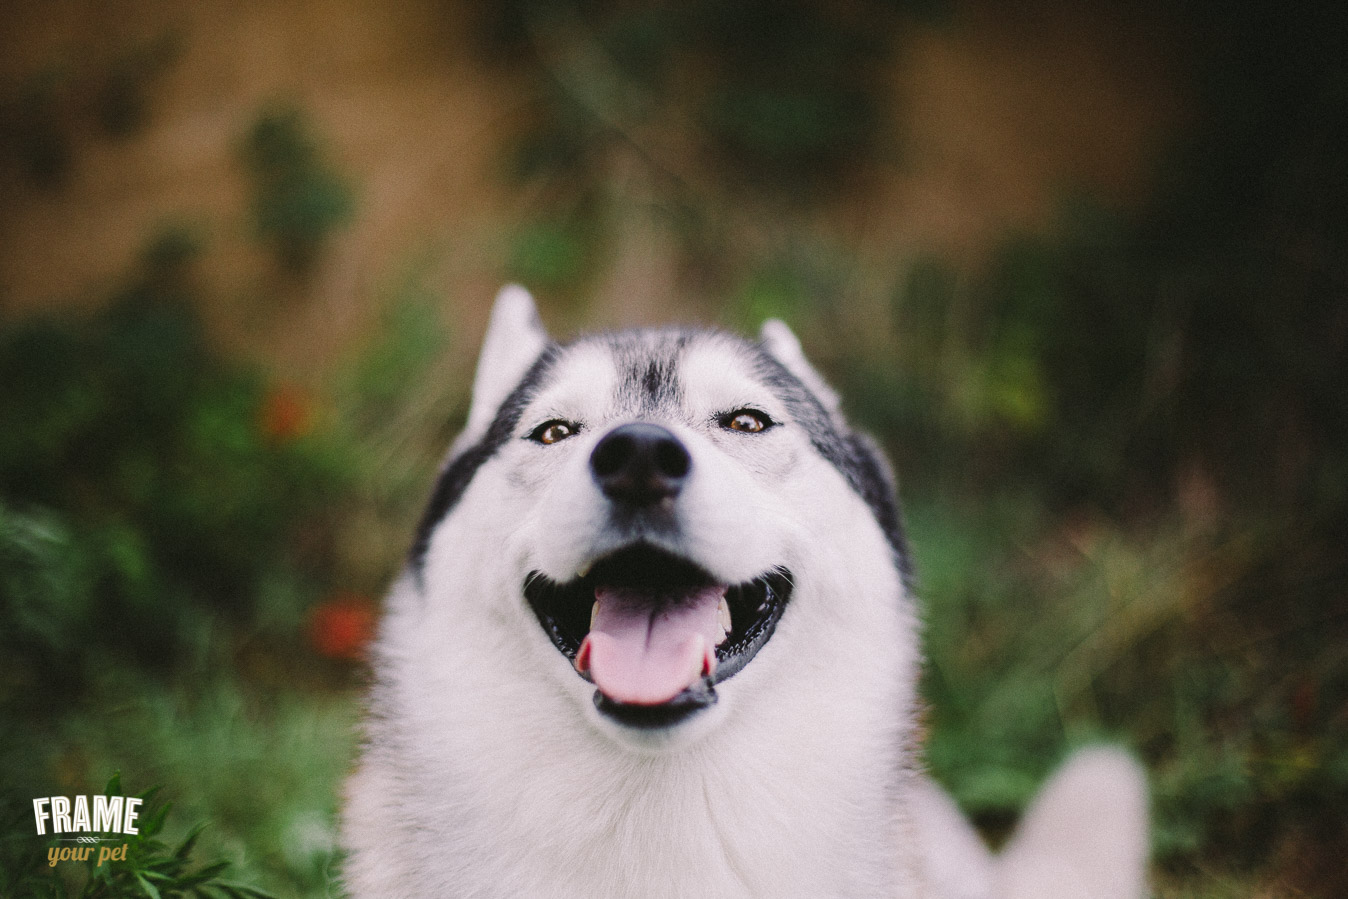 Siberian husky smiling at the camera during outdoor session in a country field with flowers.